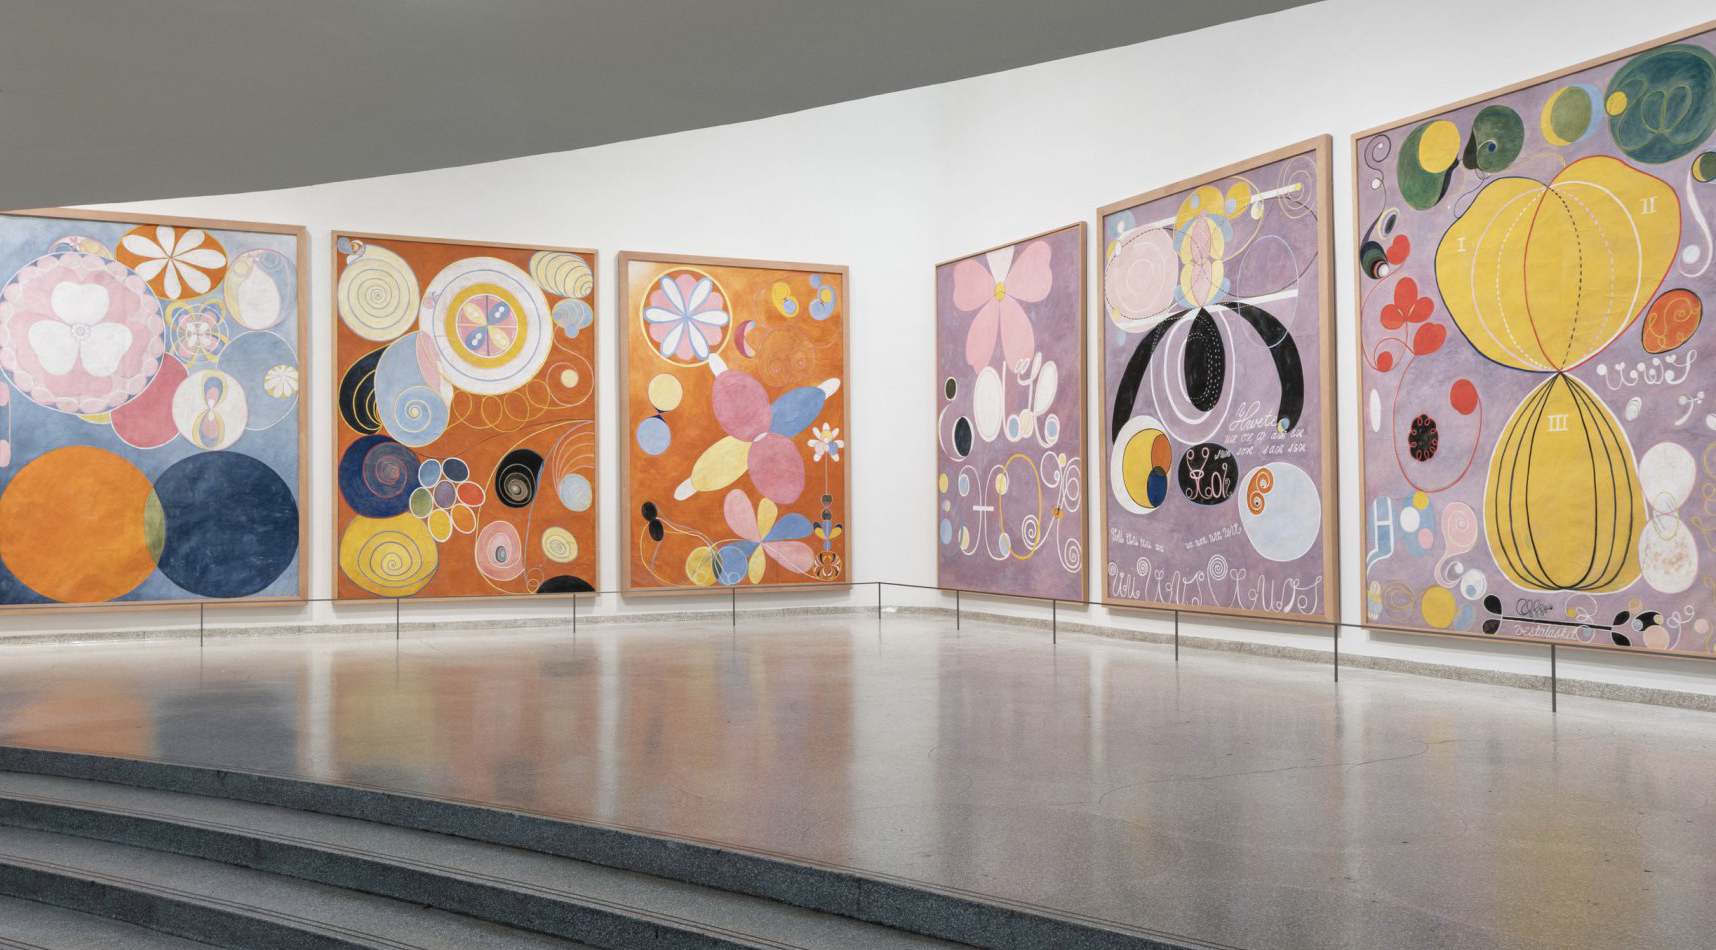 Installation view: Hilma af Klint: Paintings for the Future, Solomon R. Guggenheim Museum, New York, October 12, 2018–April 23, 2019. Photo: David Heald